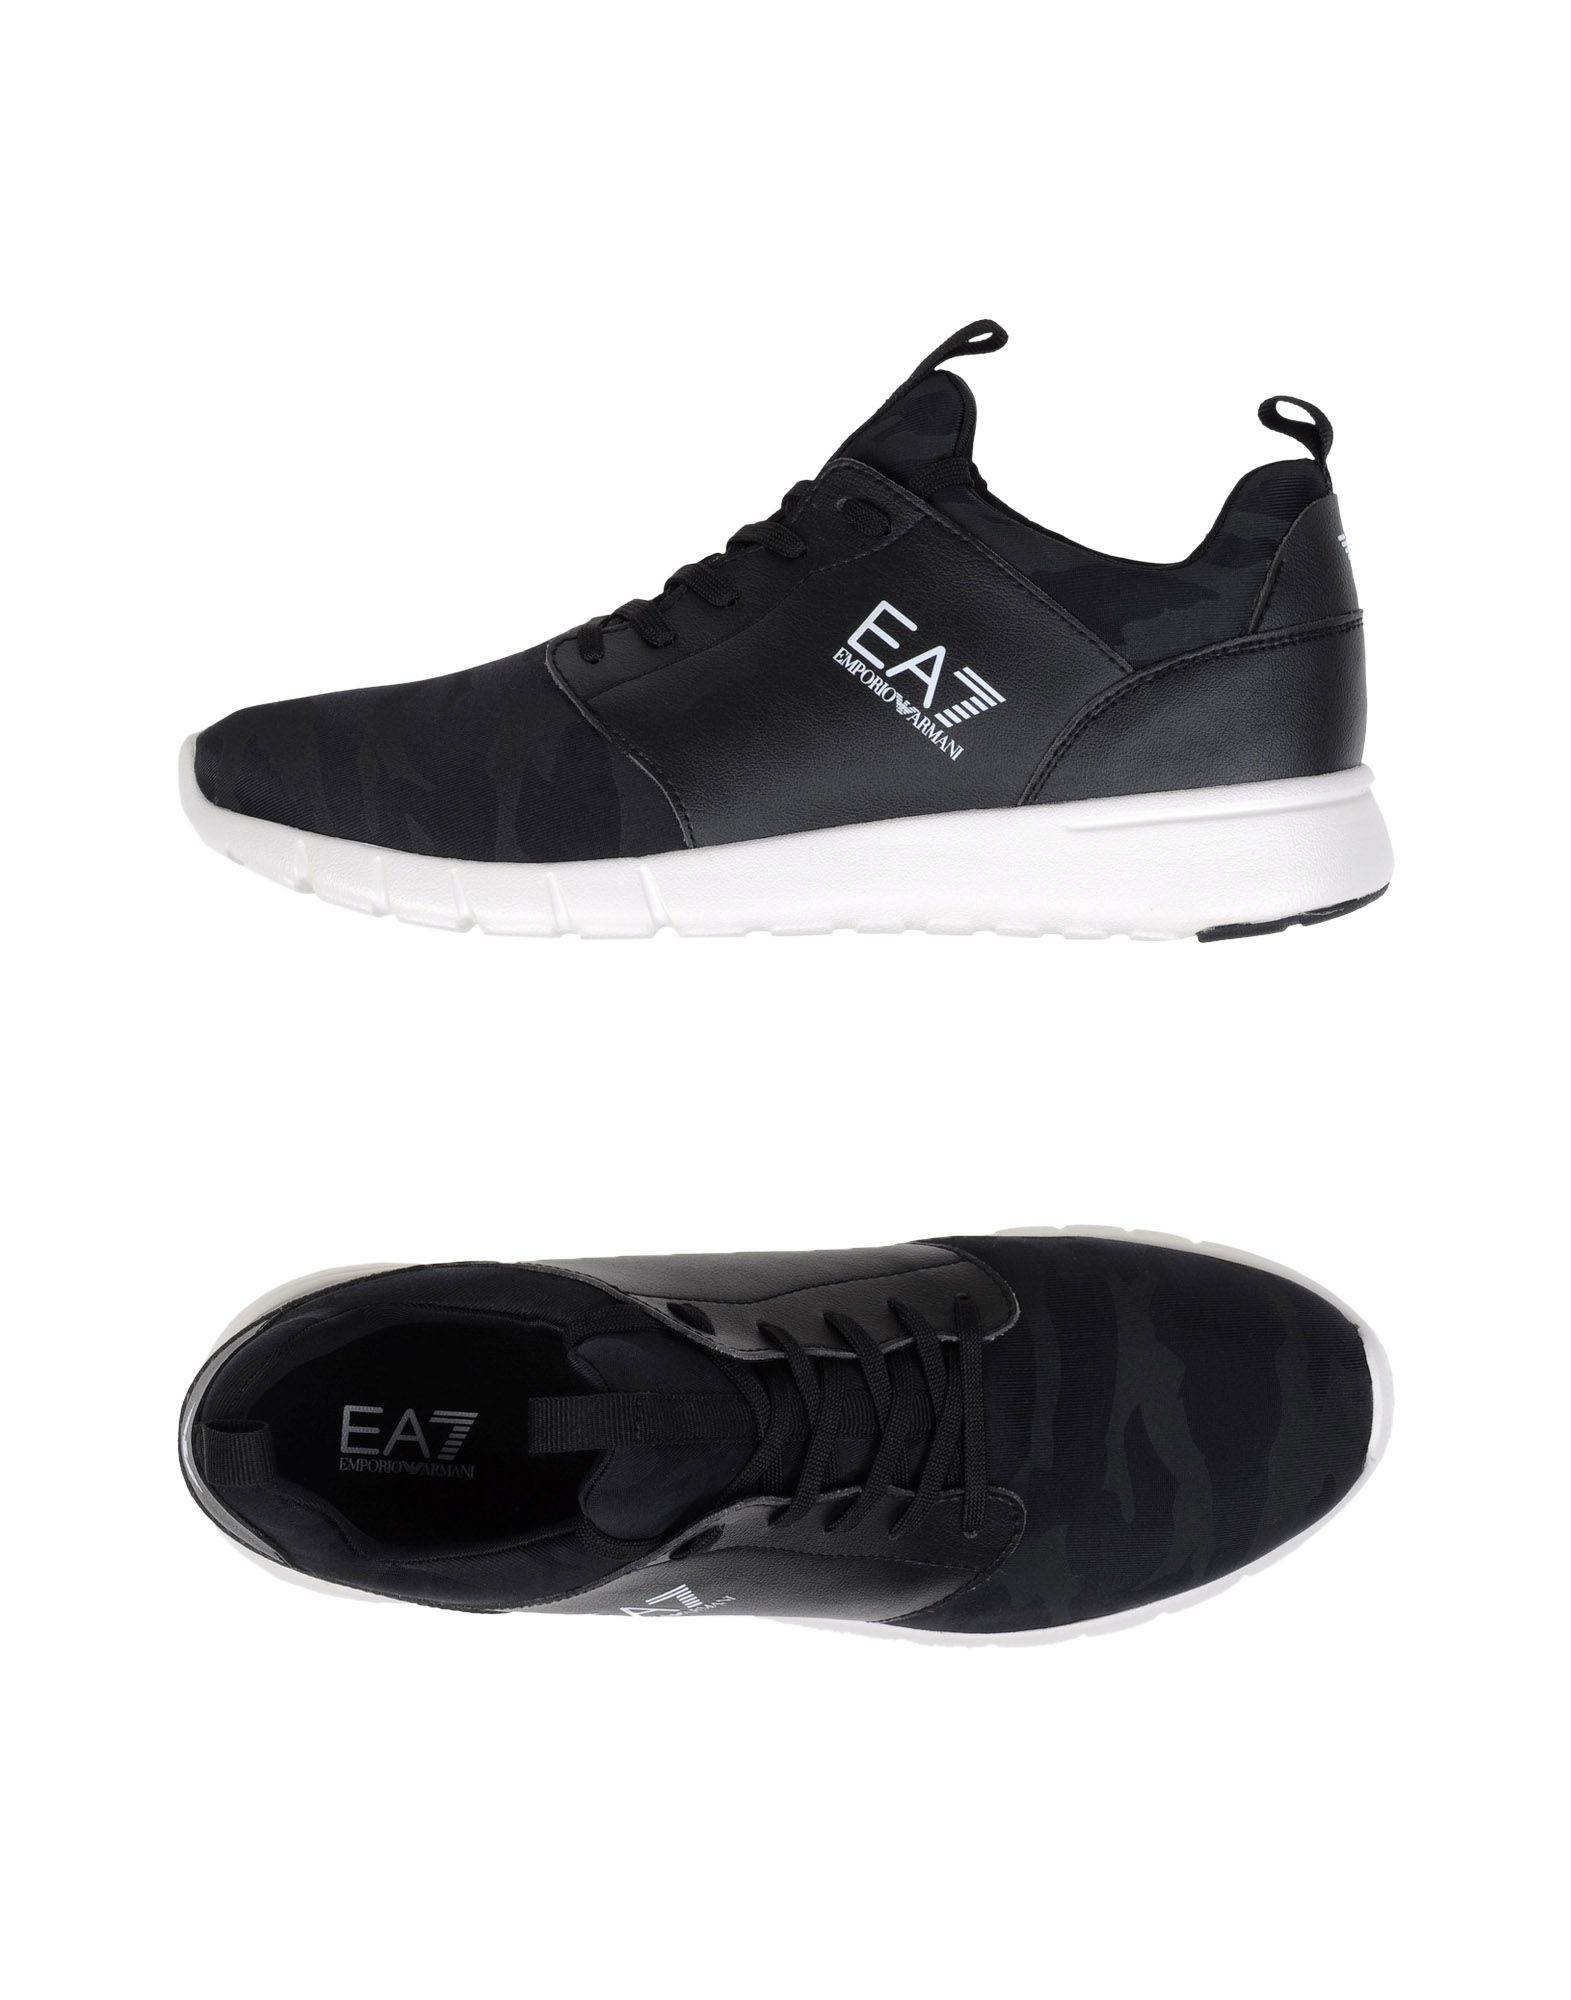 Sneakers Ea7 New Racer Stampa Camouflage M - Uomo - 11115831WL